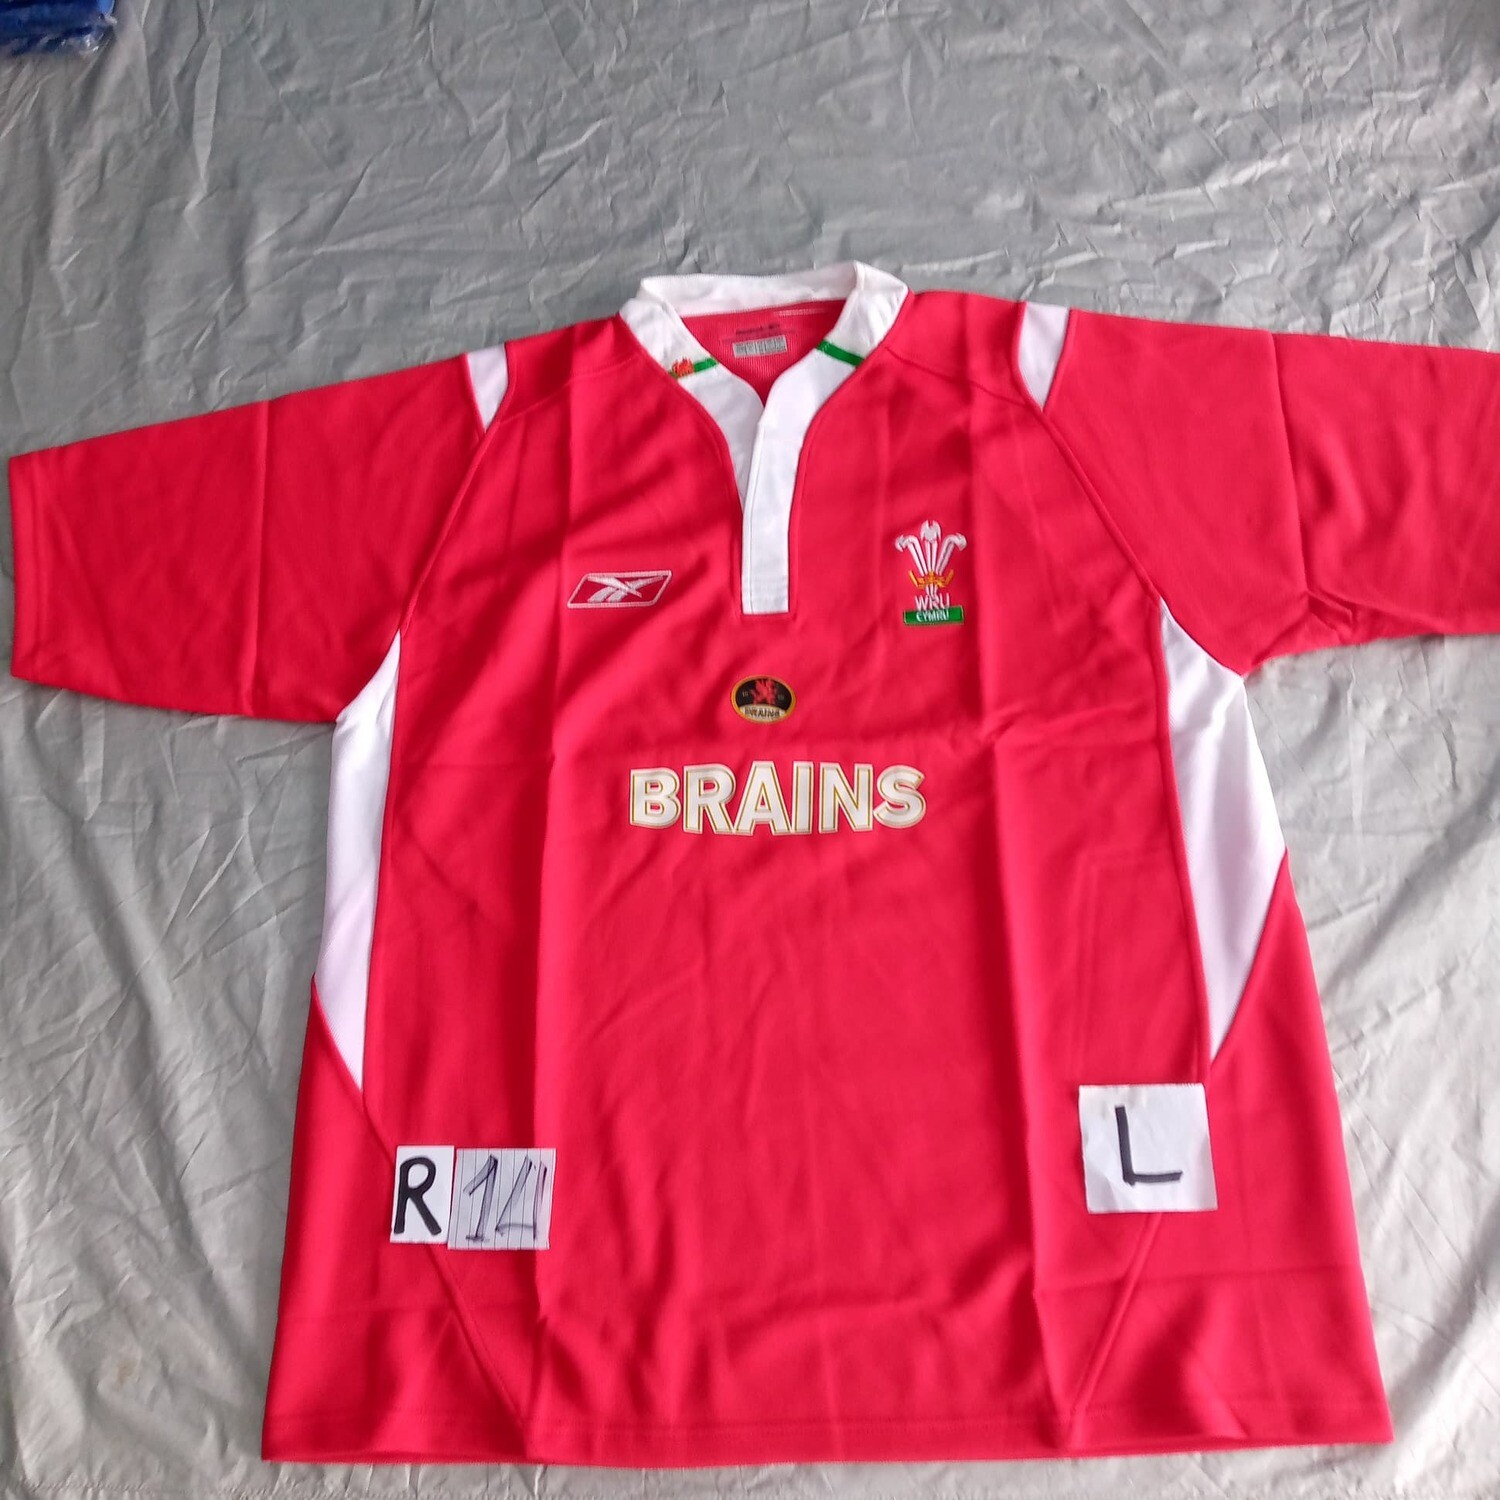 R14 GALLES Rugby Maglia Jersey Shirt Rugby WALES  TAGLIA L SIZE L